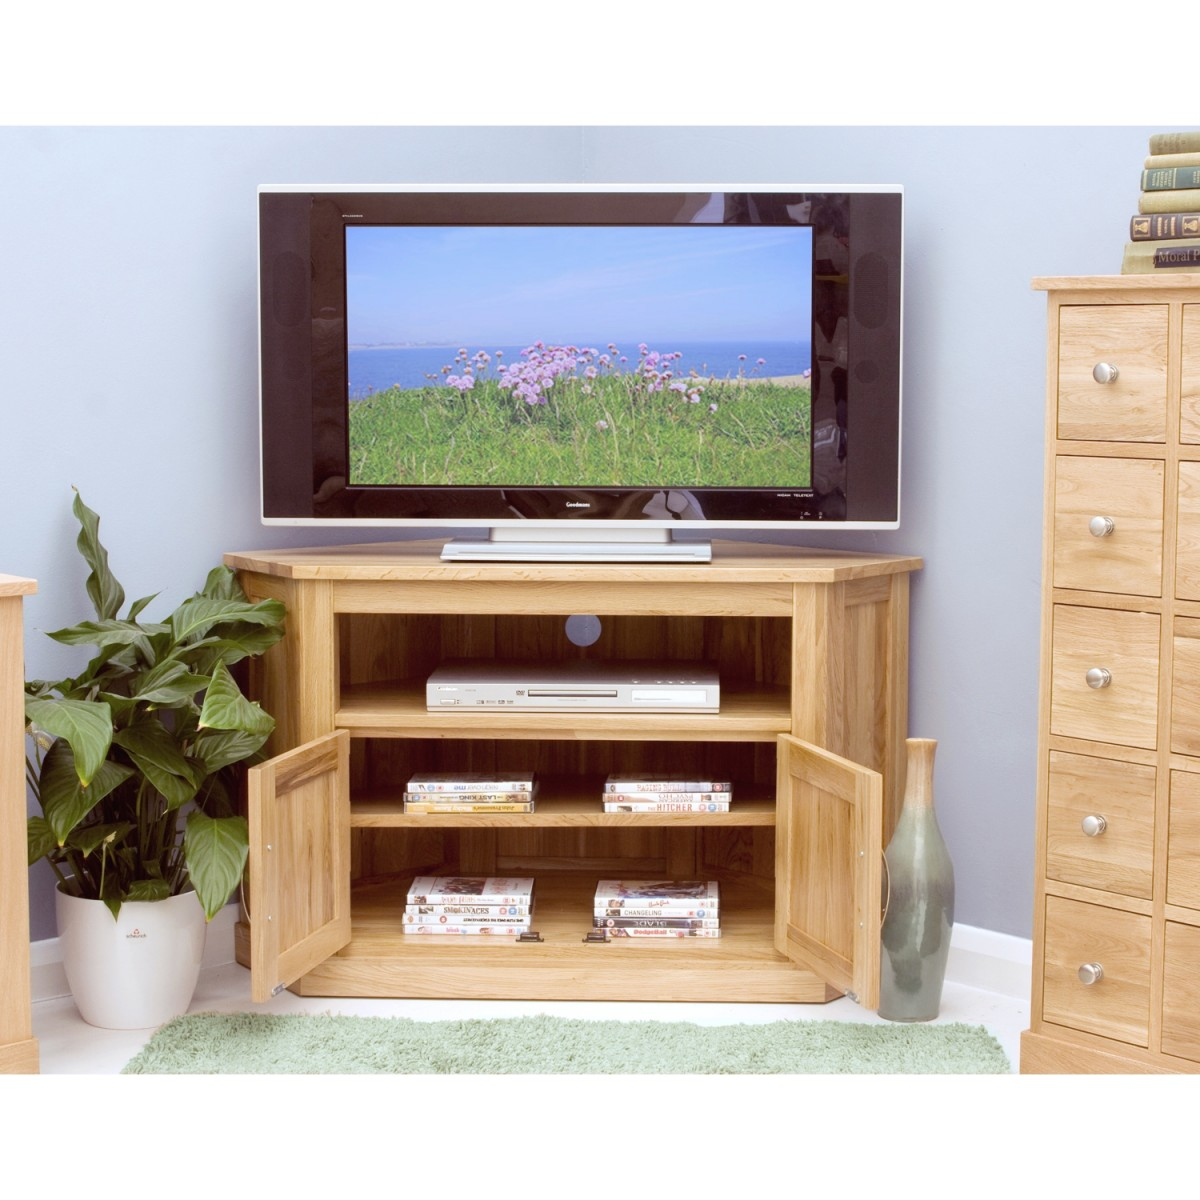 baumhaus mobel solid oak corner baumhaus mobel solid oak corner tv cabinet cor09c aston solid oak wall mirror